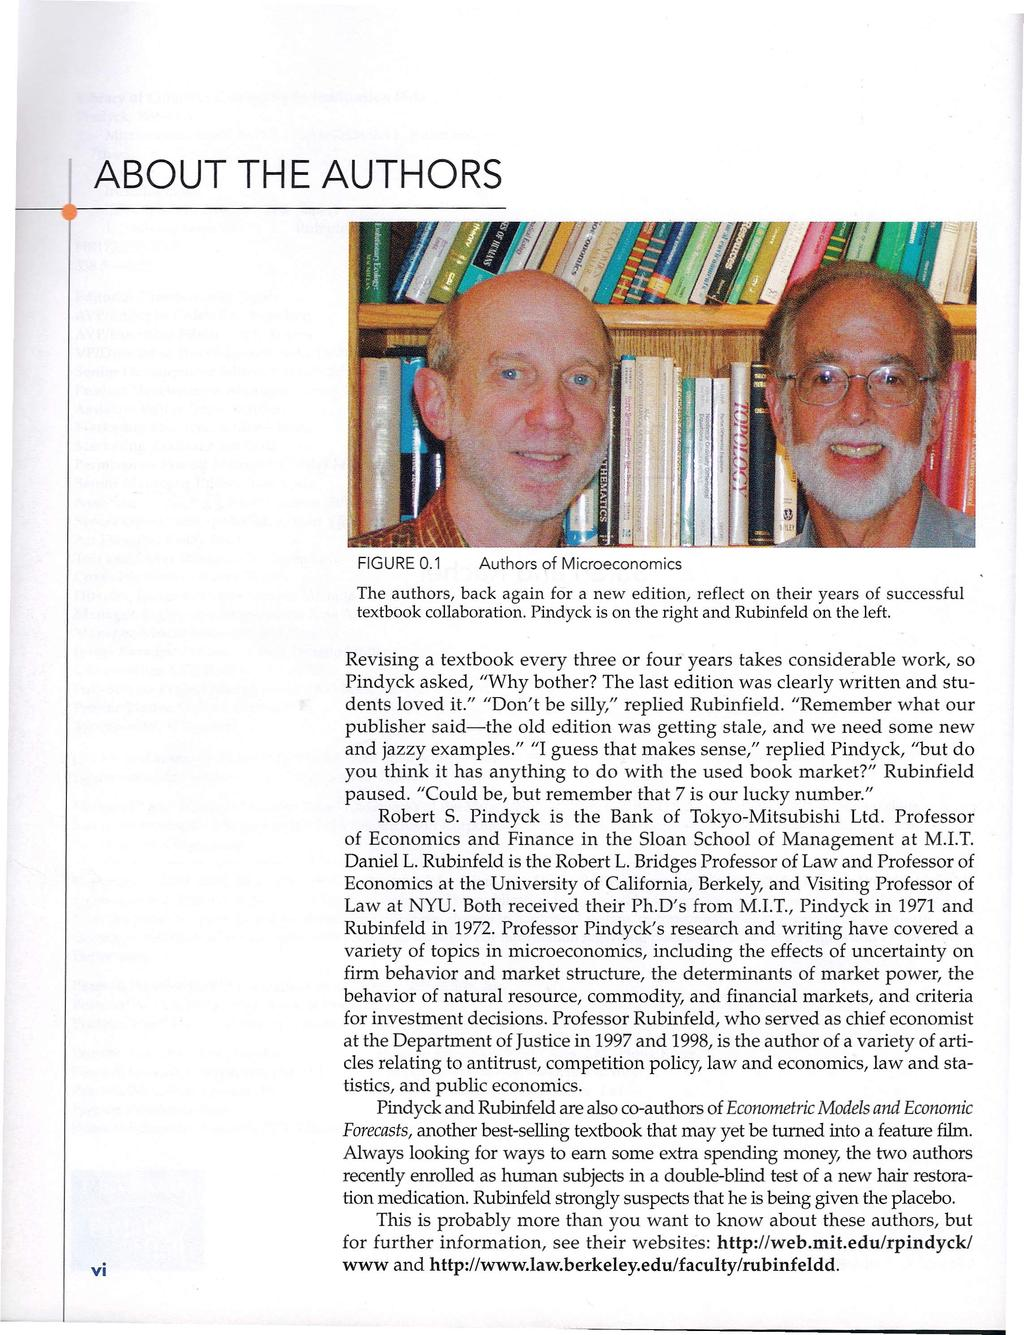 Seventh edition robert s pindyck daniel l rubinfeld pdf i 1 about the authors figure 01 authors of microeconomics the authors back again for fandeluxe Gallery